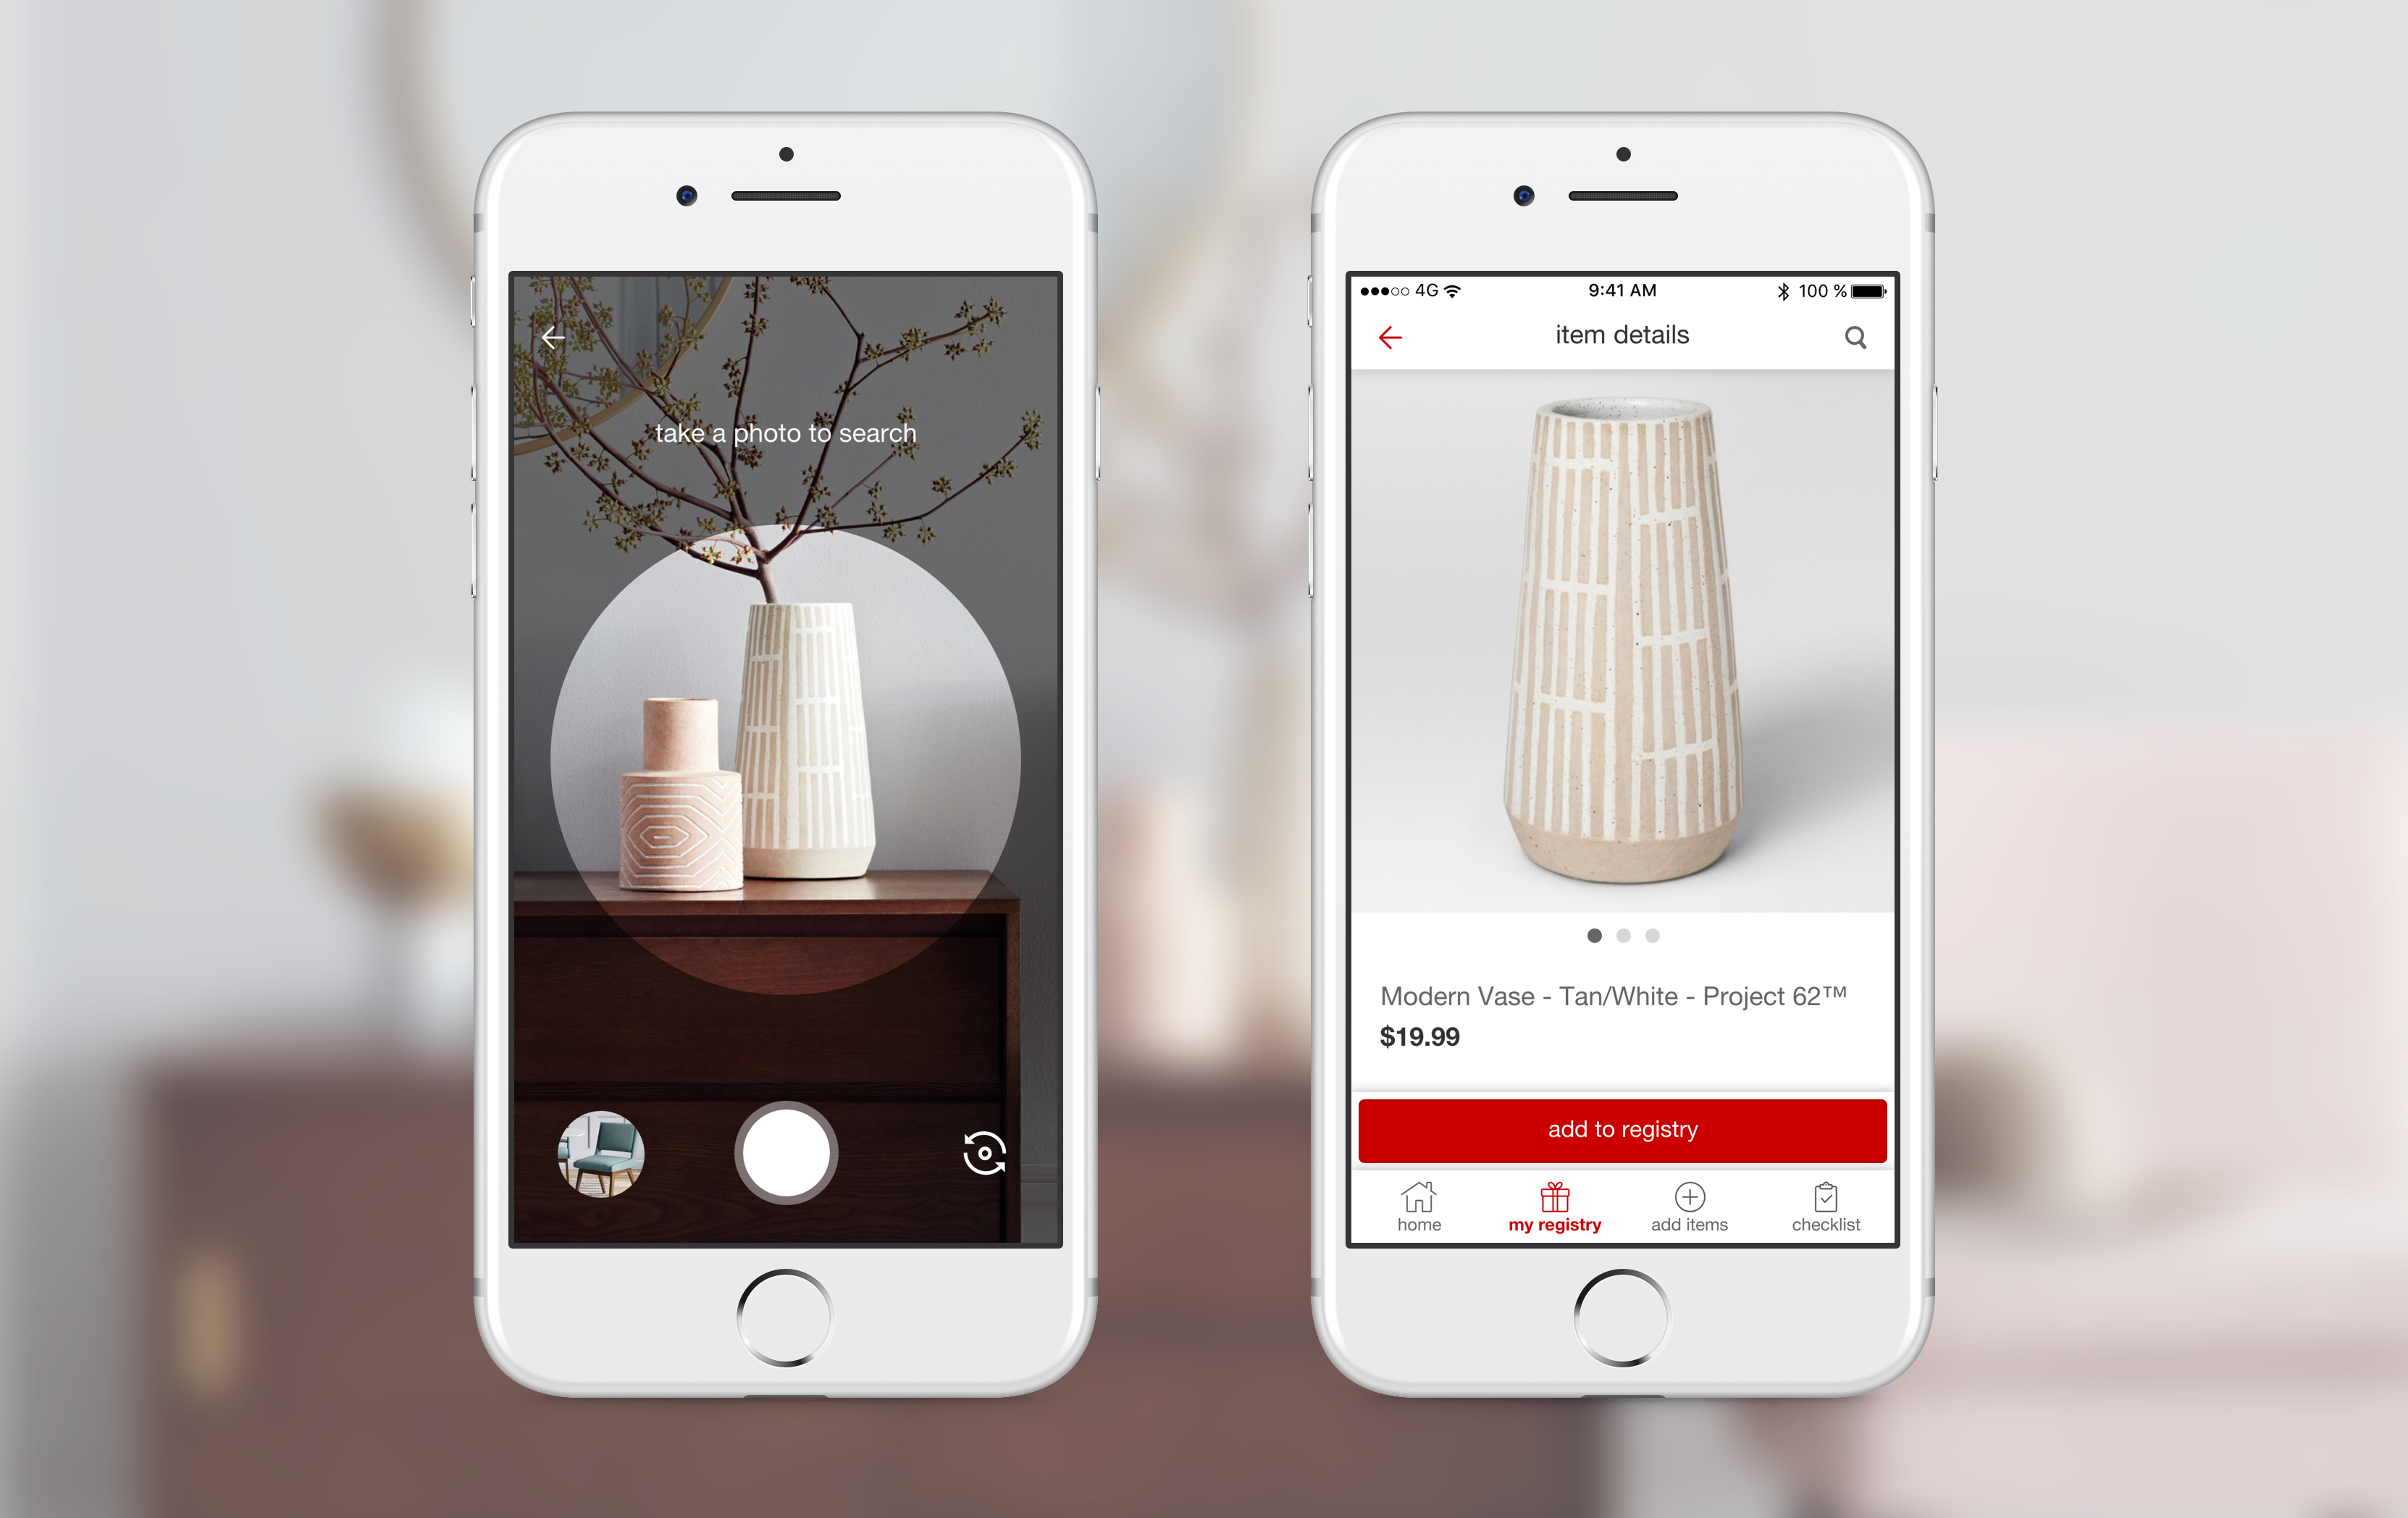 Target integrated Pinterest's visual search tool to its app and website